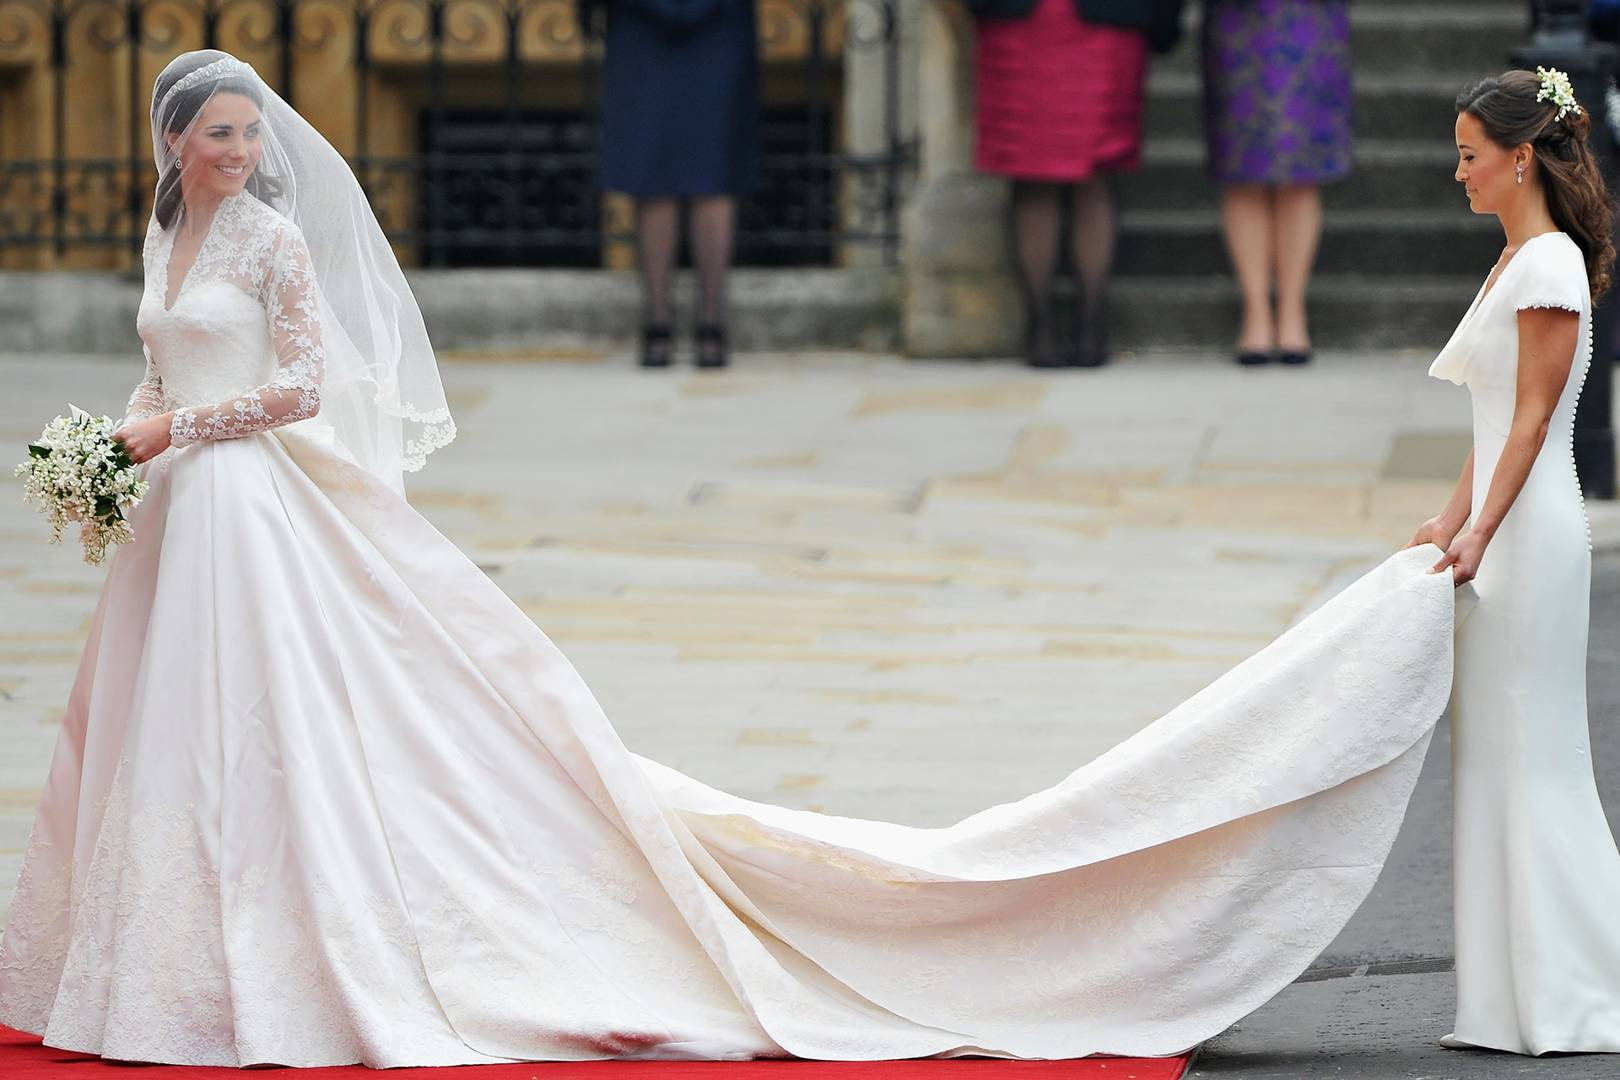 Kate Middleton Second Wedding Dress | Glamour UK